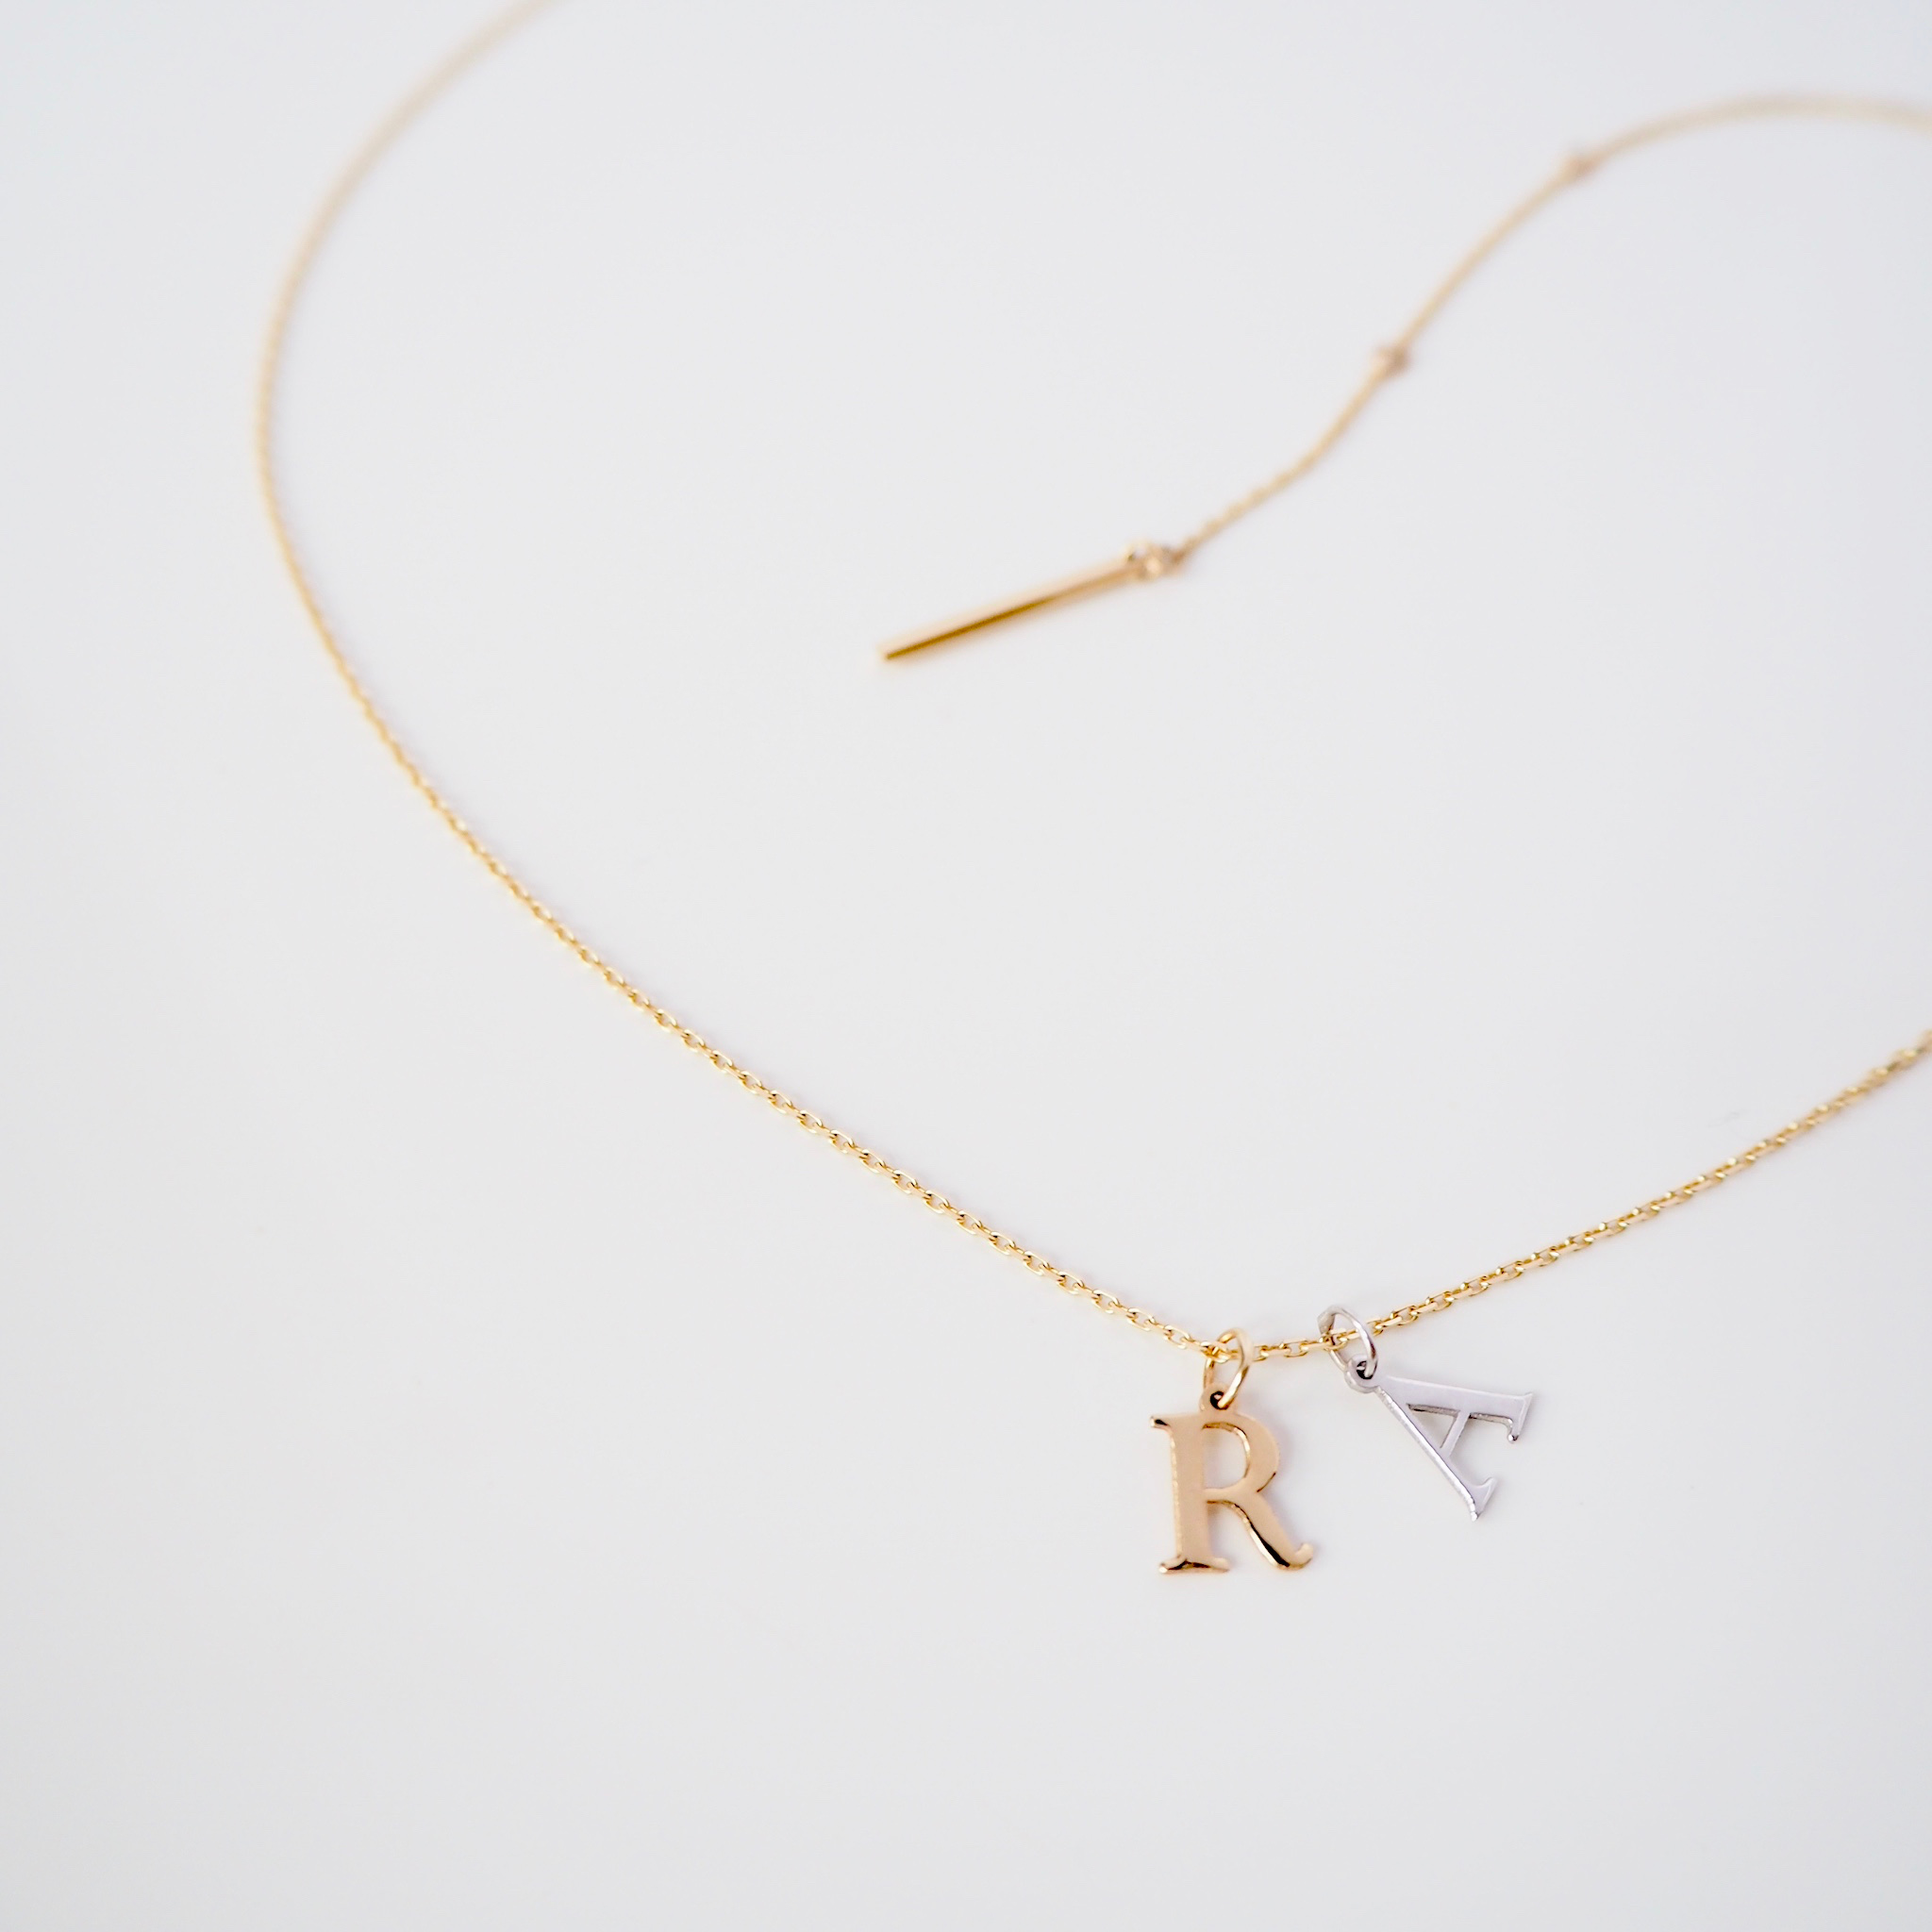 K18/ K14 Initial Charm Necklace